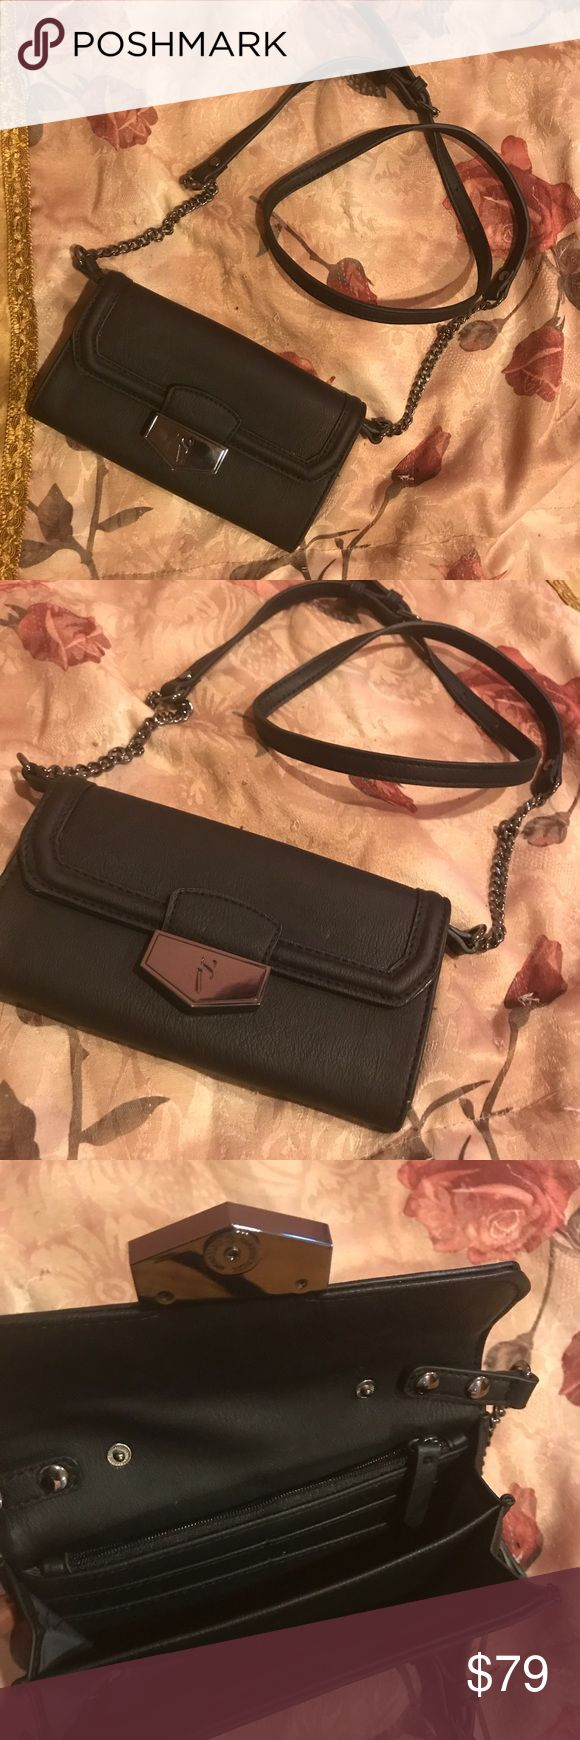 "Black Simply Vera WOC Like only worn once BNWT, ""Simply Vera"" by the Vera Wang collection wallet on a chain  ....(The more you buy, the more I lower my prices so bundle & save!!) Simply Vera Vera Wang Bags"